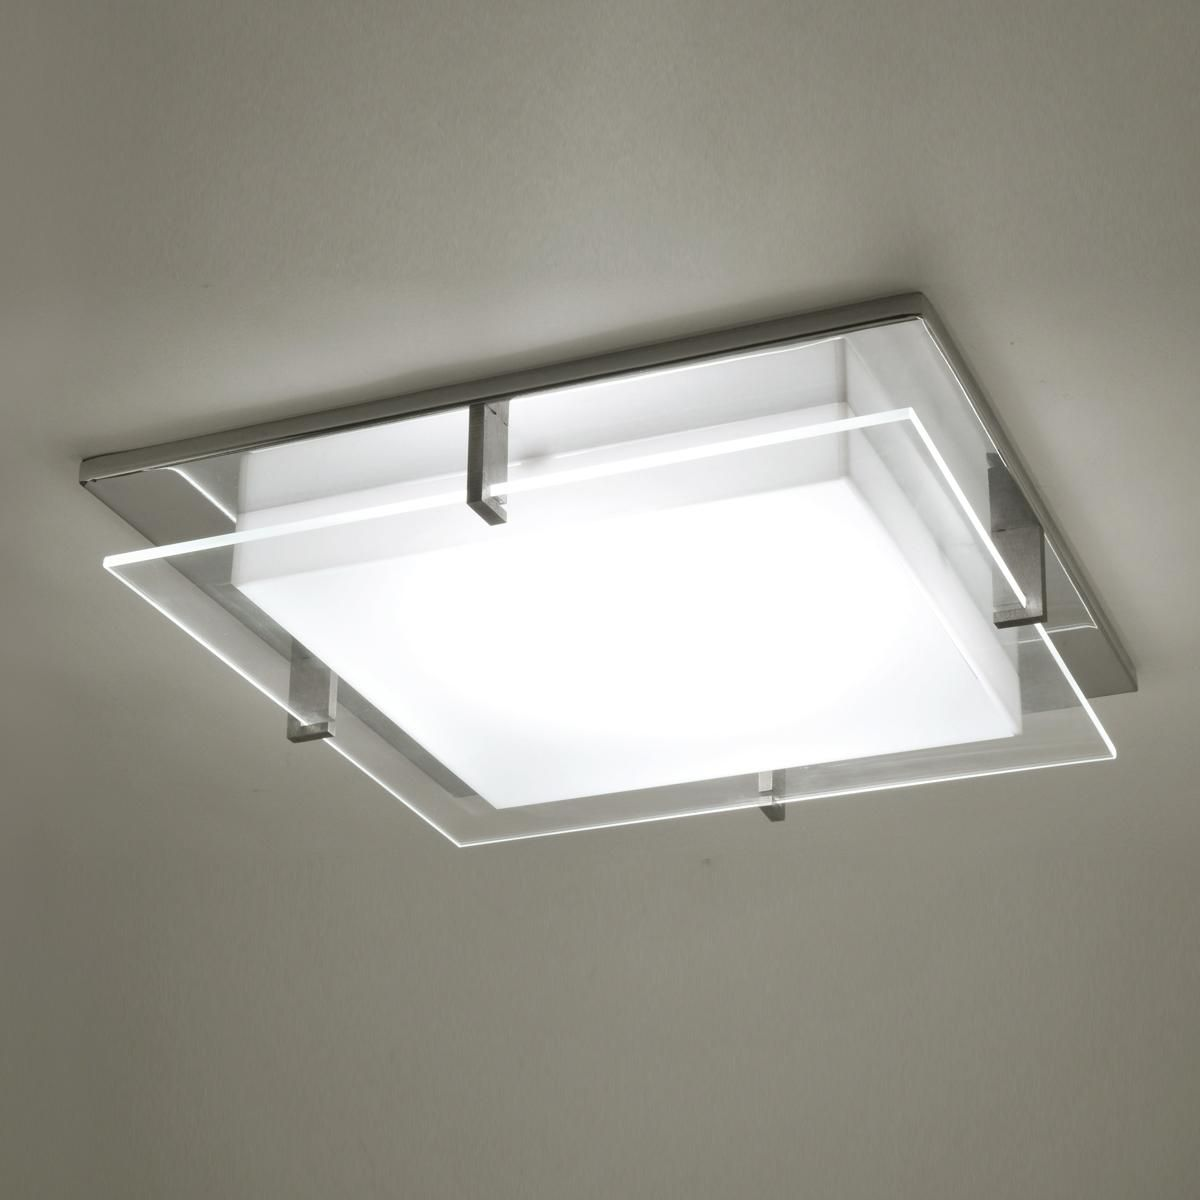 Modern Square Ceiling Light Adapter For Recessed Light Kitchen